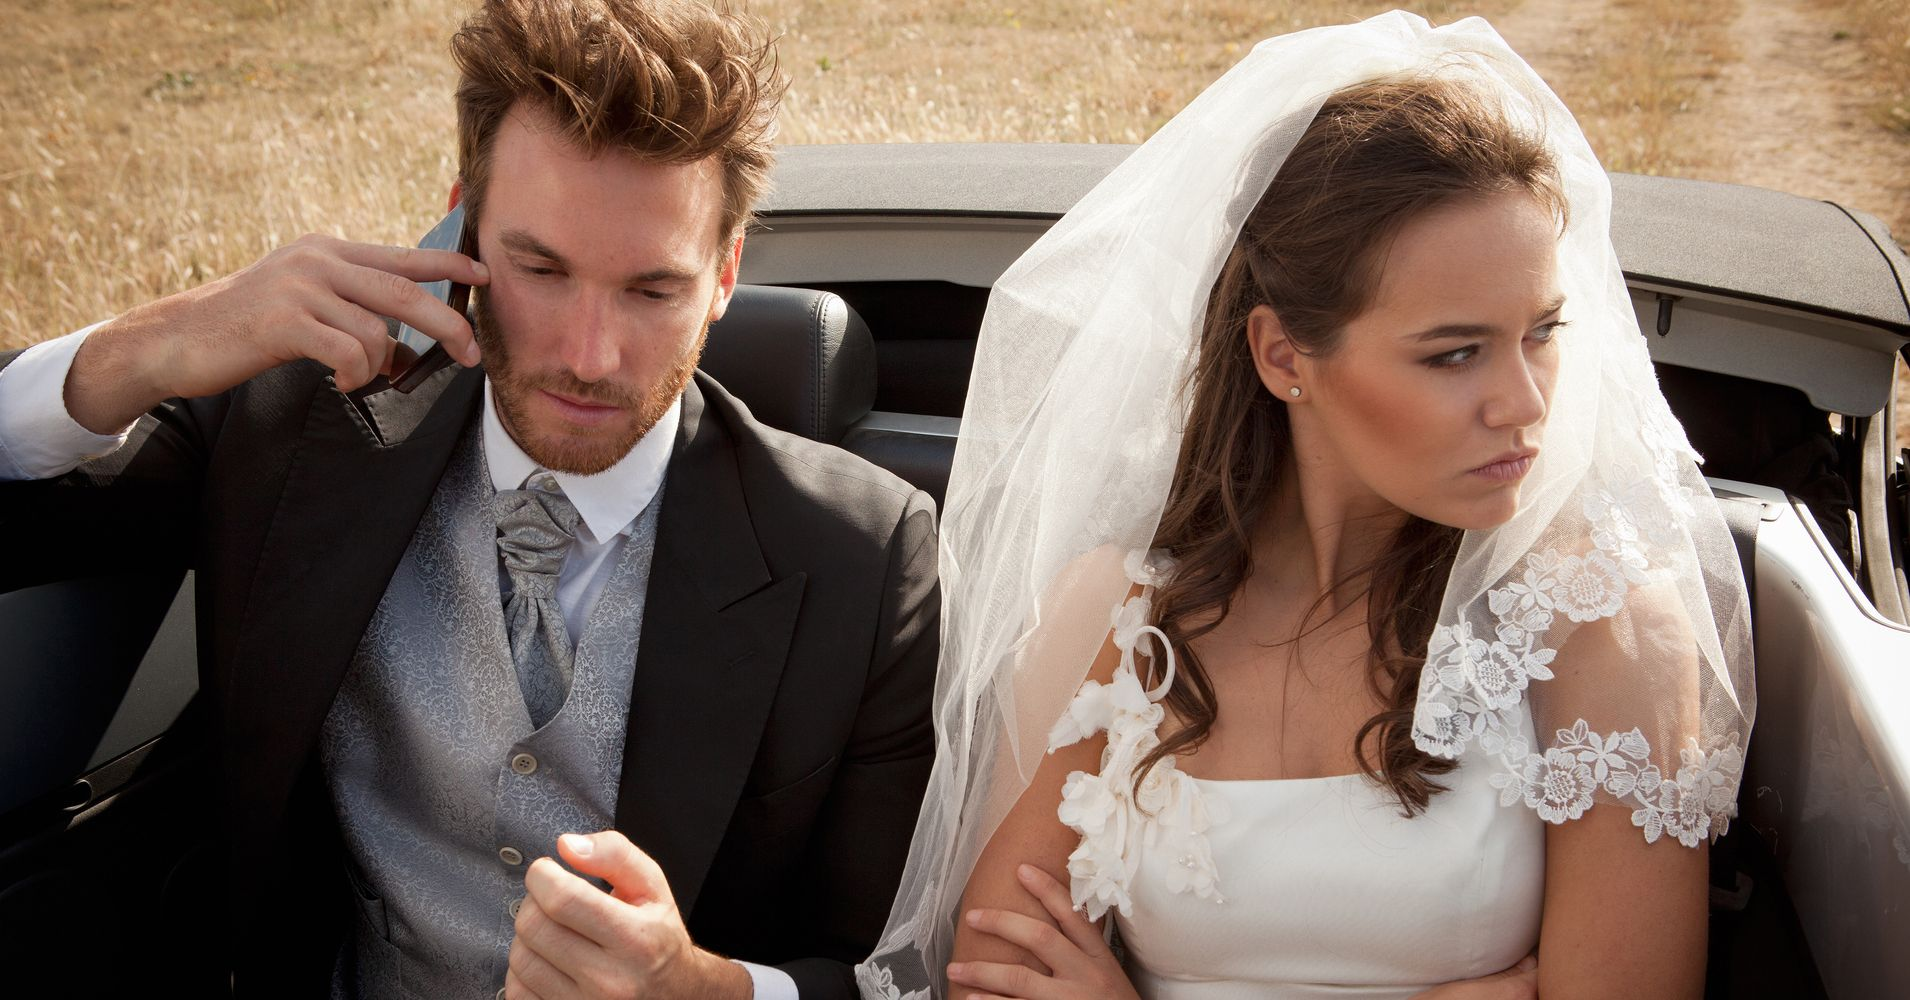 7 Signs A Marriage Wont Last According To Wedding Officiants